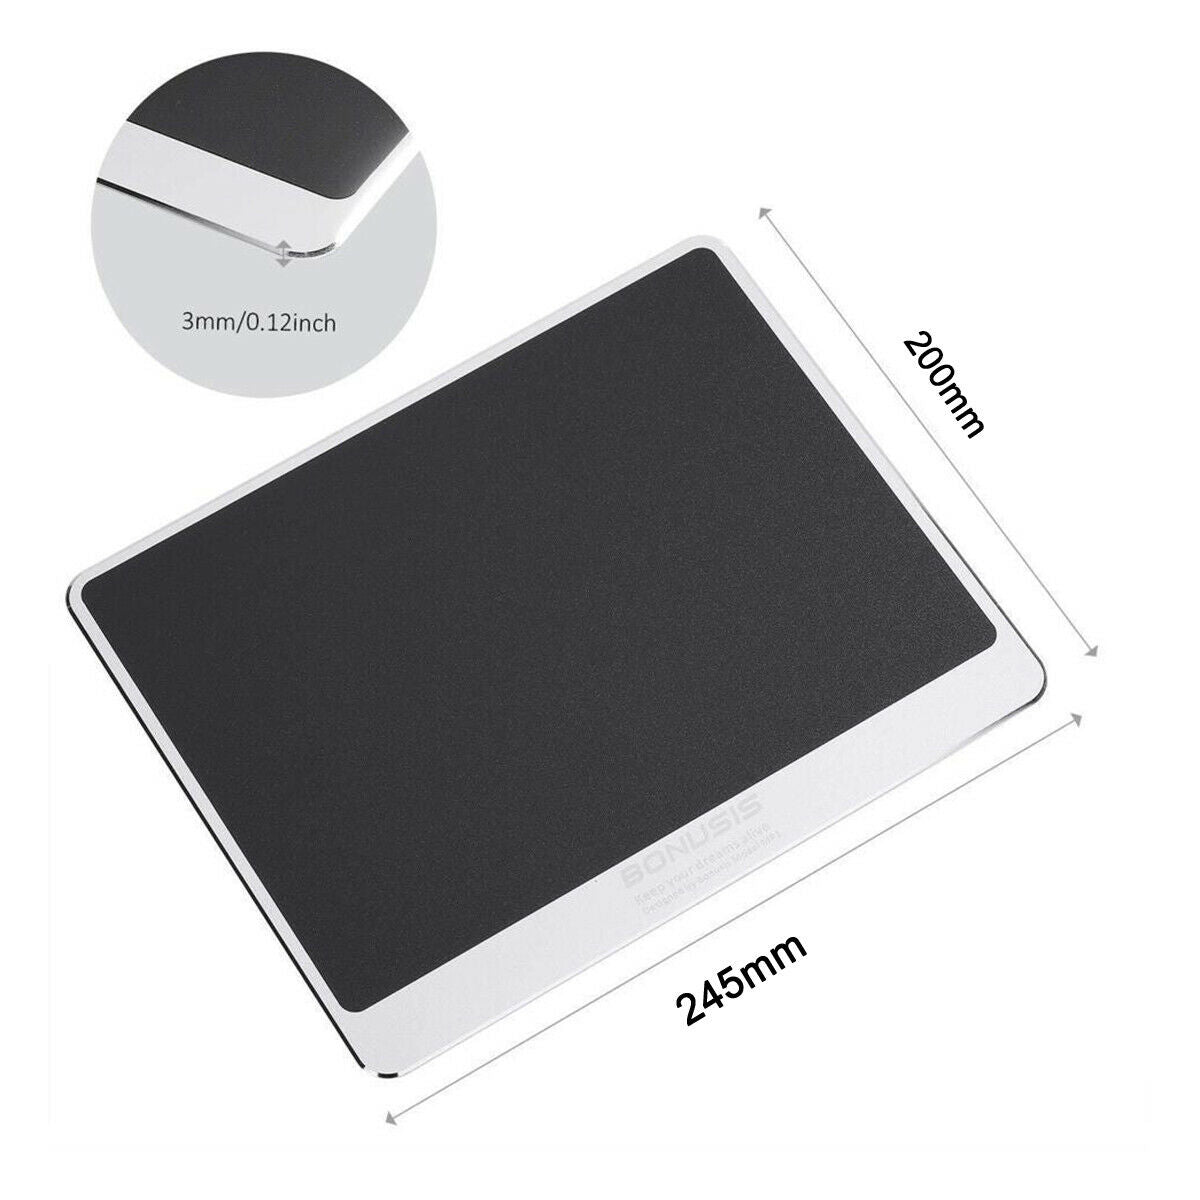 Aluminium 245mm x 200mm x 3mm Mouse Mat Resin NonSlip Rubber Slim Mouse Mice Pad